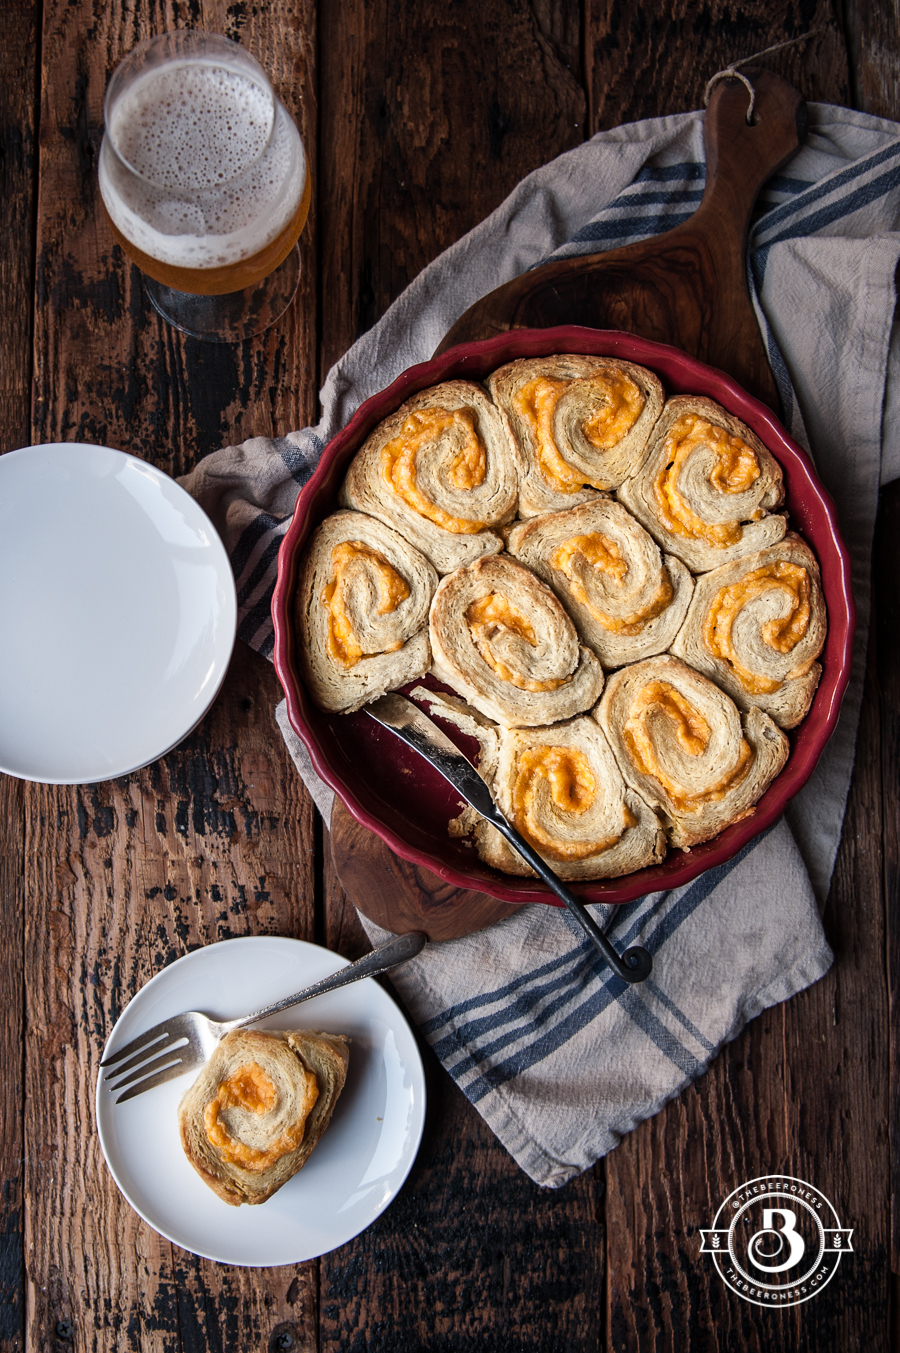 20-Minute Garlic Cheddar Beer Biscuit Rolls7